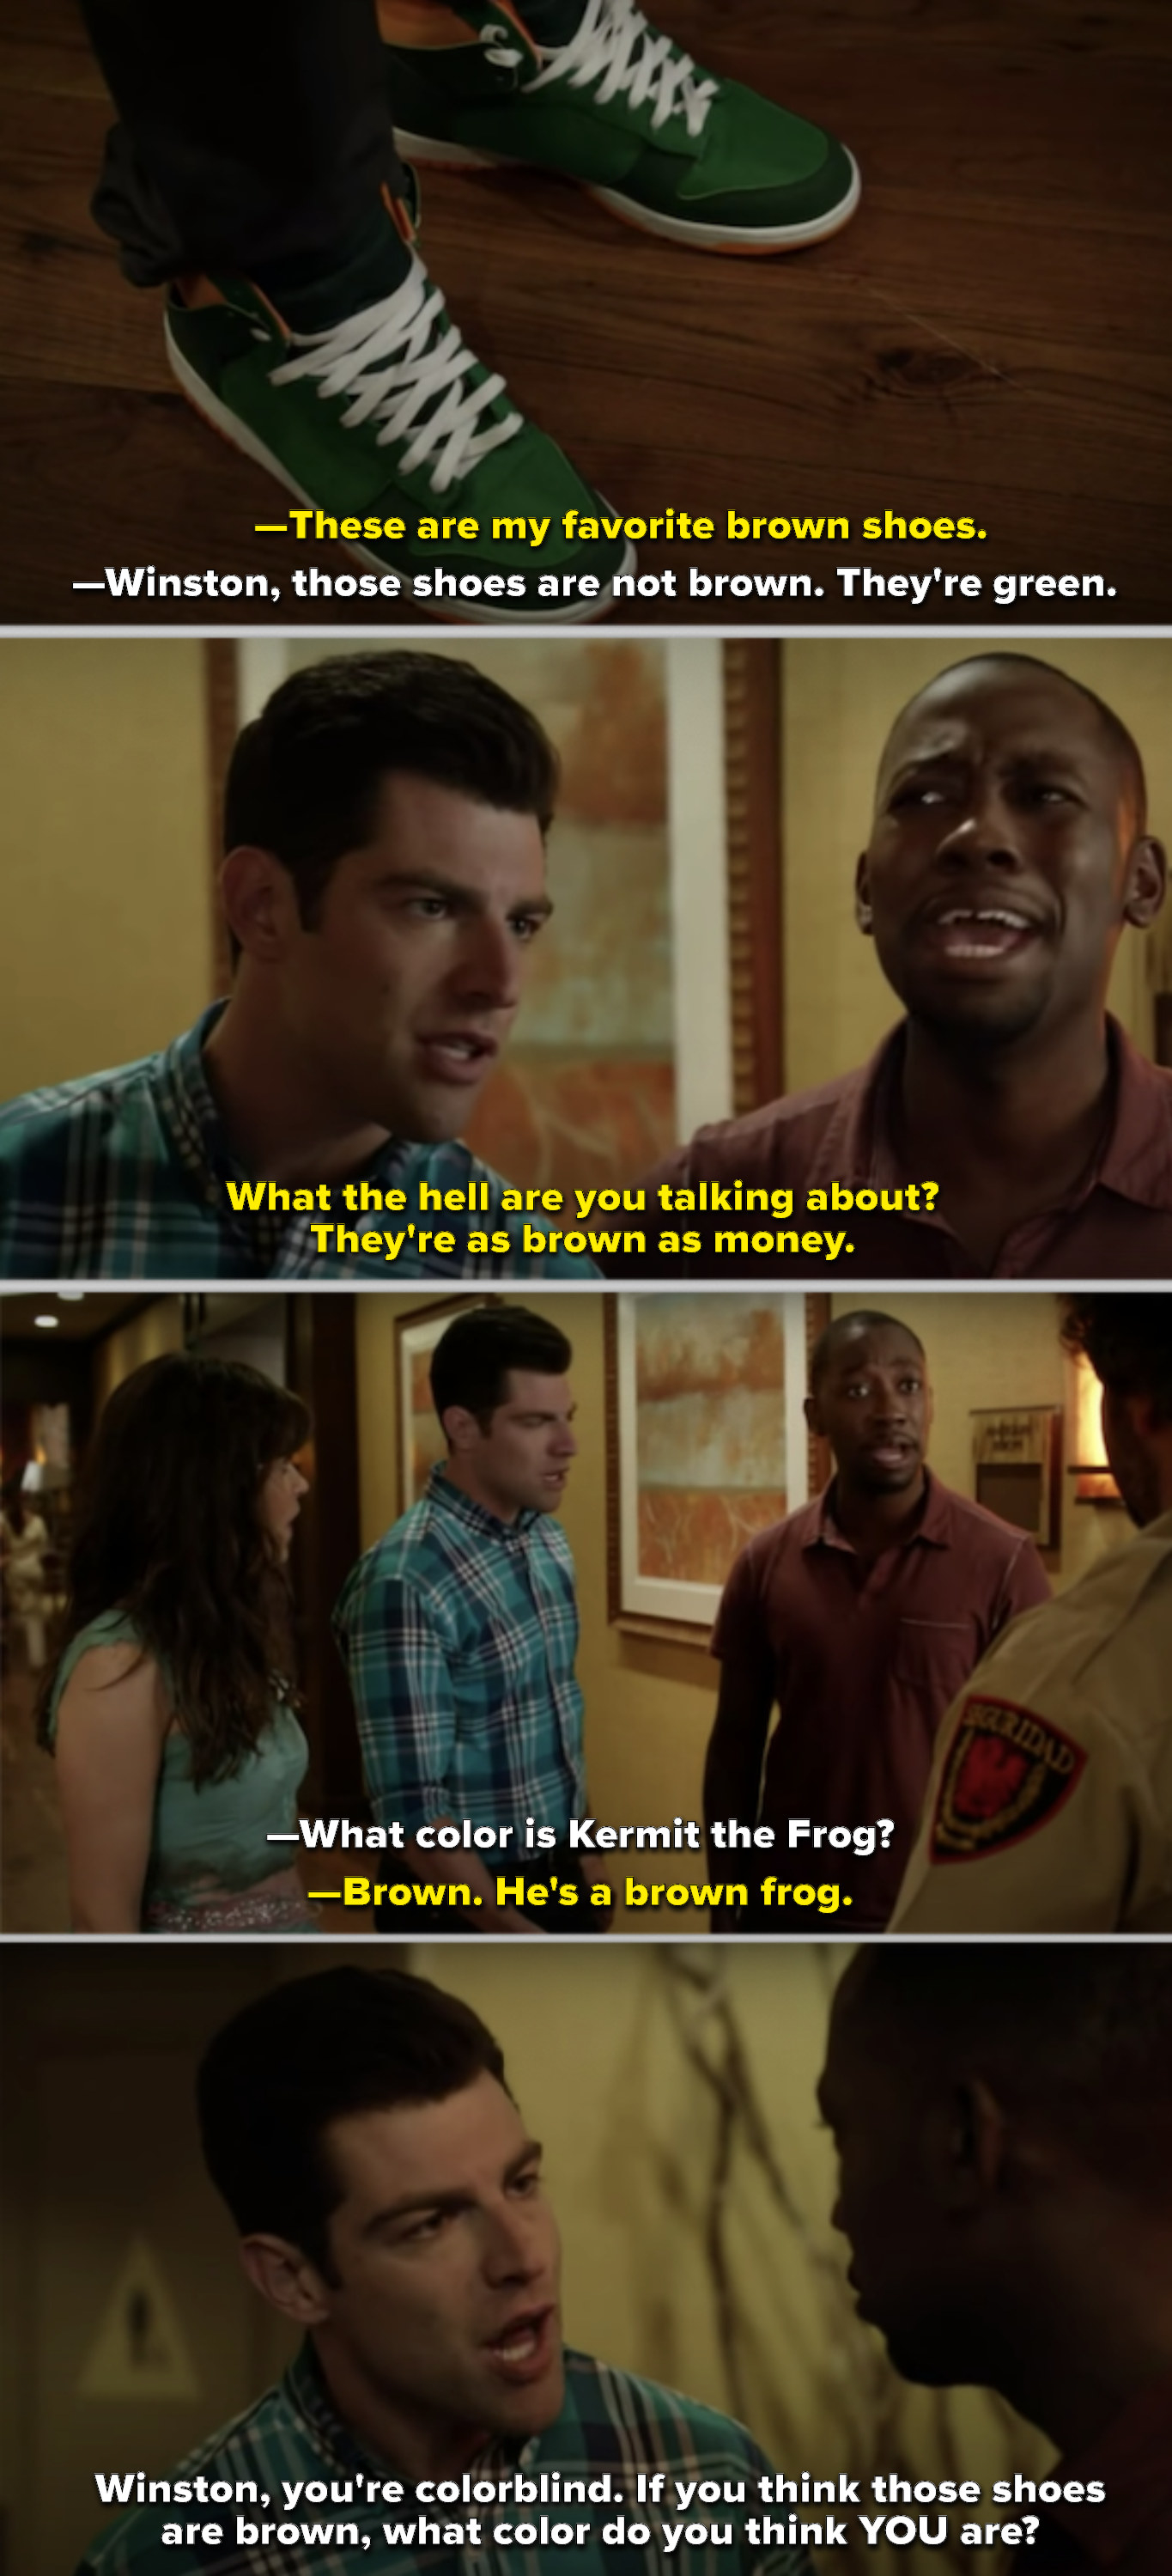 Schmidt questioning Winston's shoe color